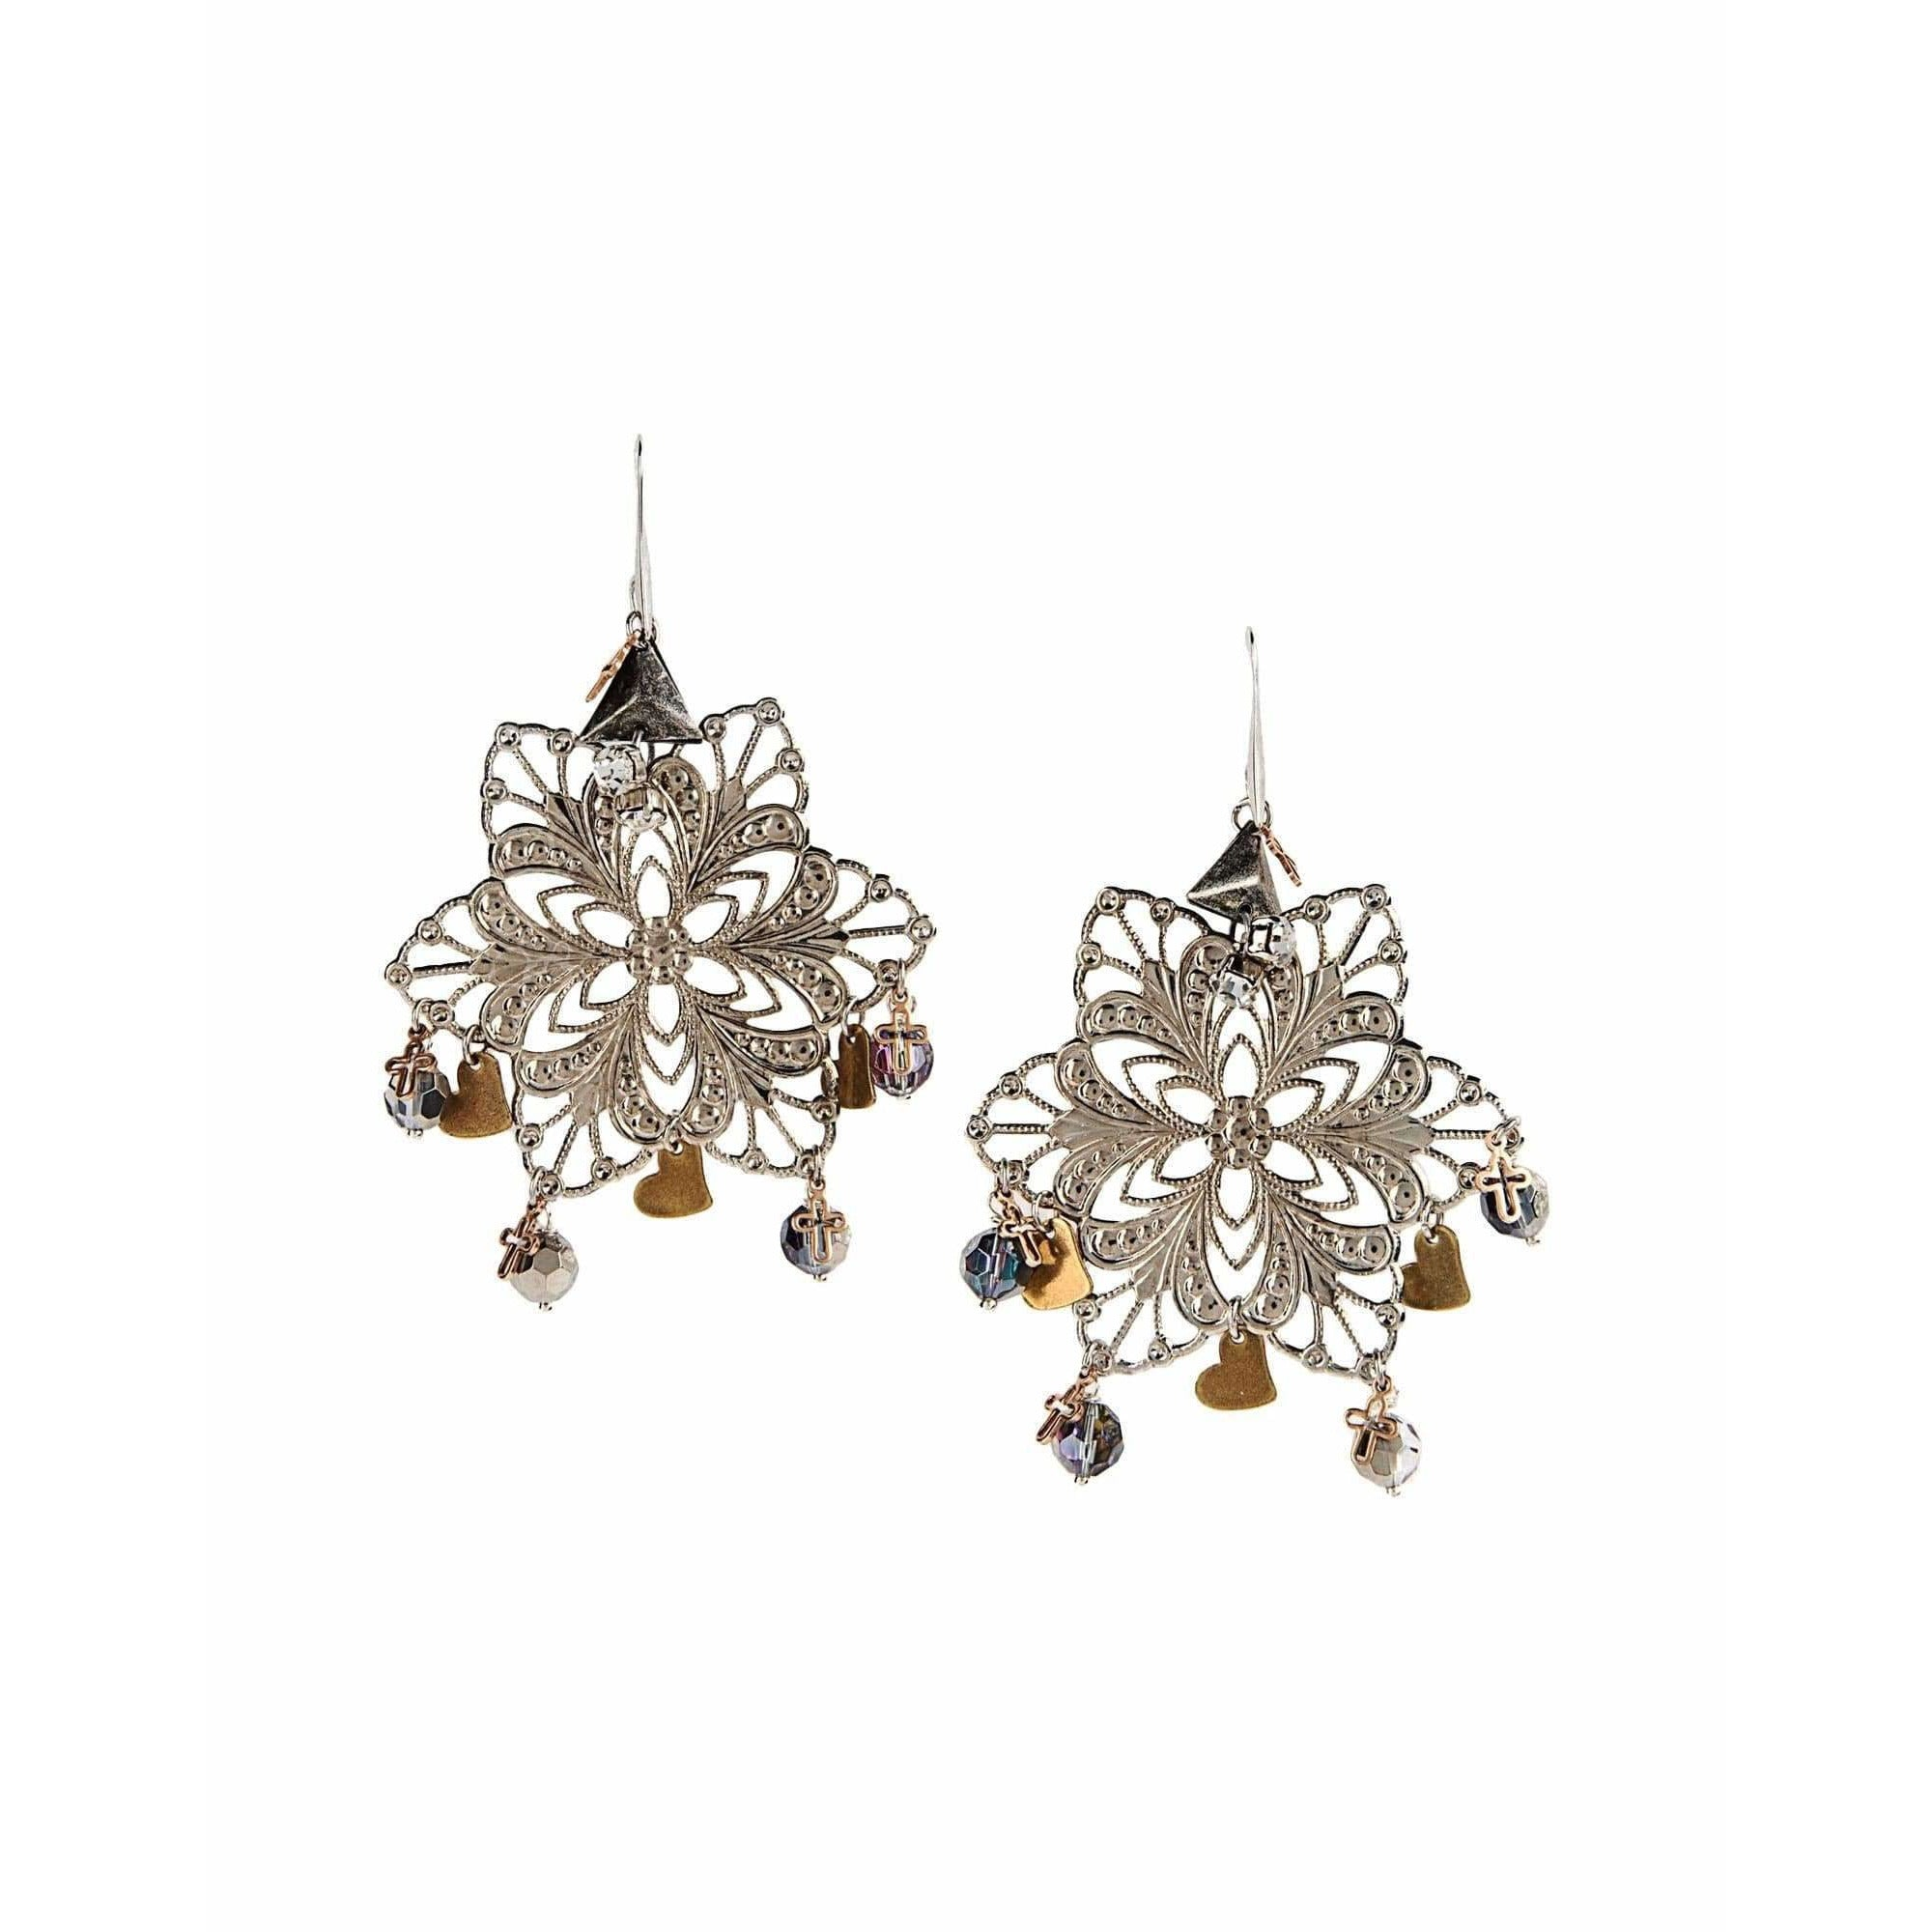 Chandelier Earrings With Crystals and Beads - 18k Gold Plated and Silver Plated - Miraposa